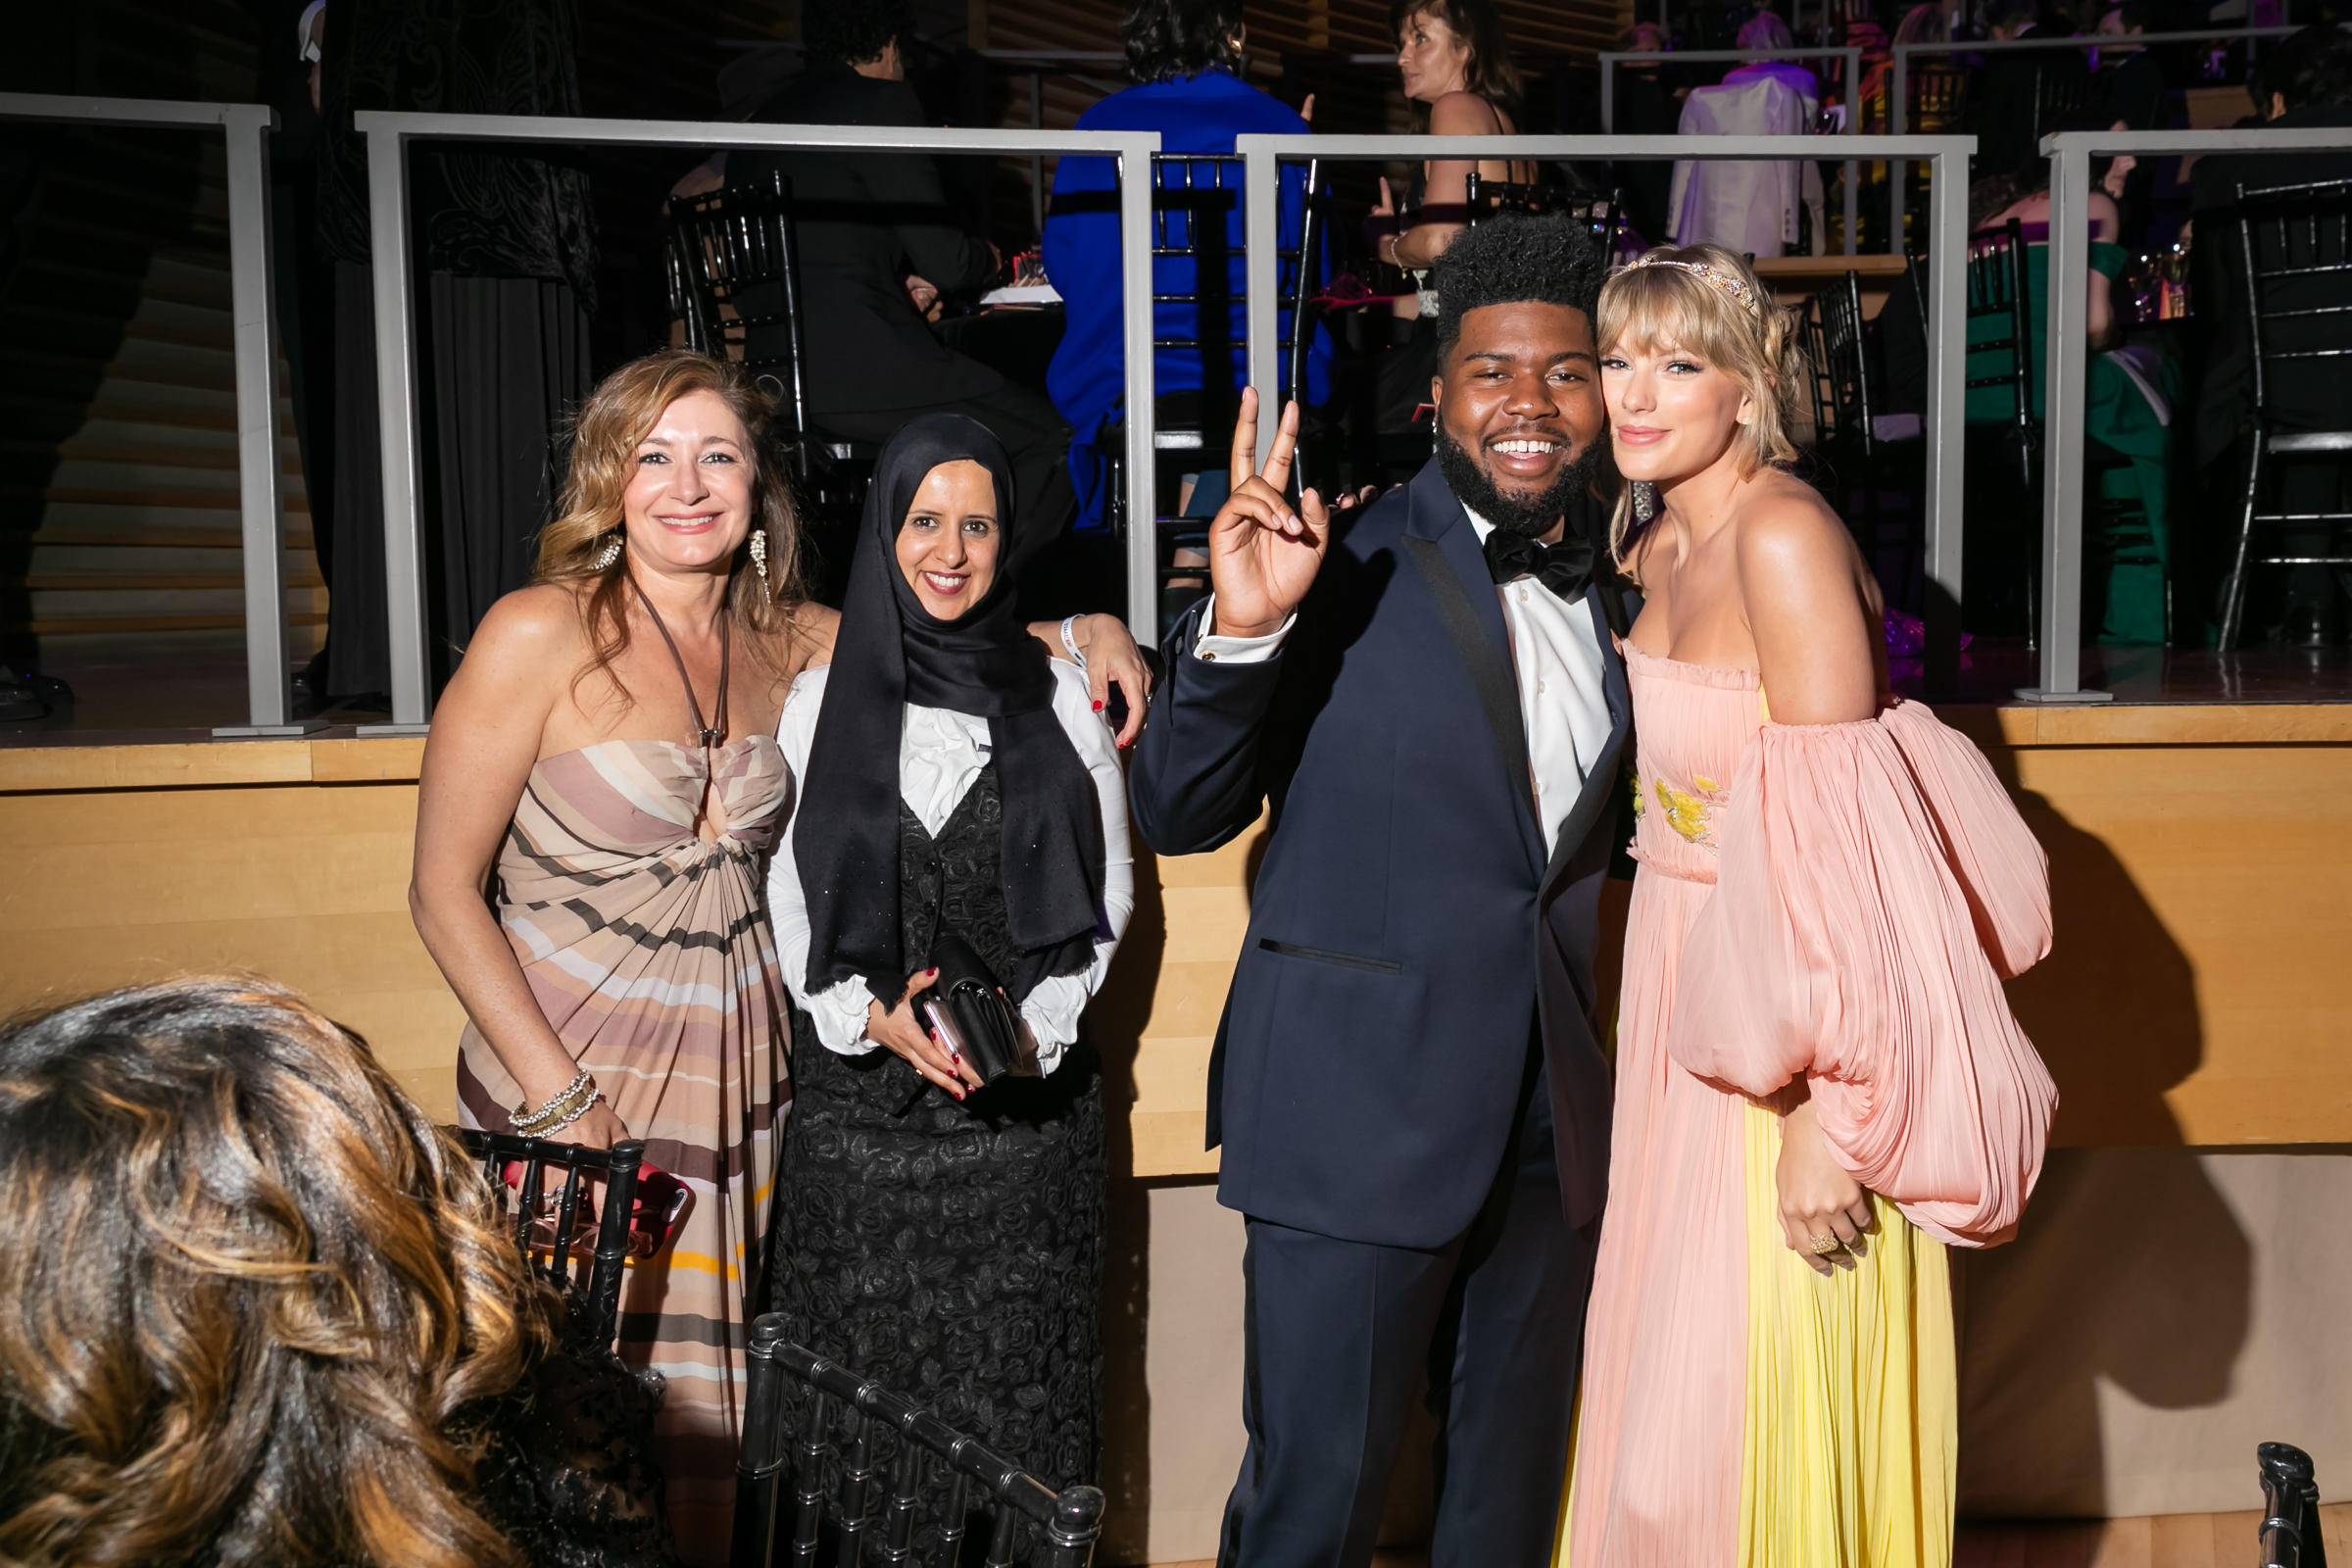 Sarah Leah Whitson, Radhya al-Mutawakel, Khalid and Taylor Swift at the Time 100 Gala at Jazz at Lincoln Center in New York City on April 23, 2019.